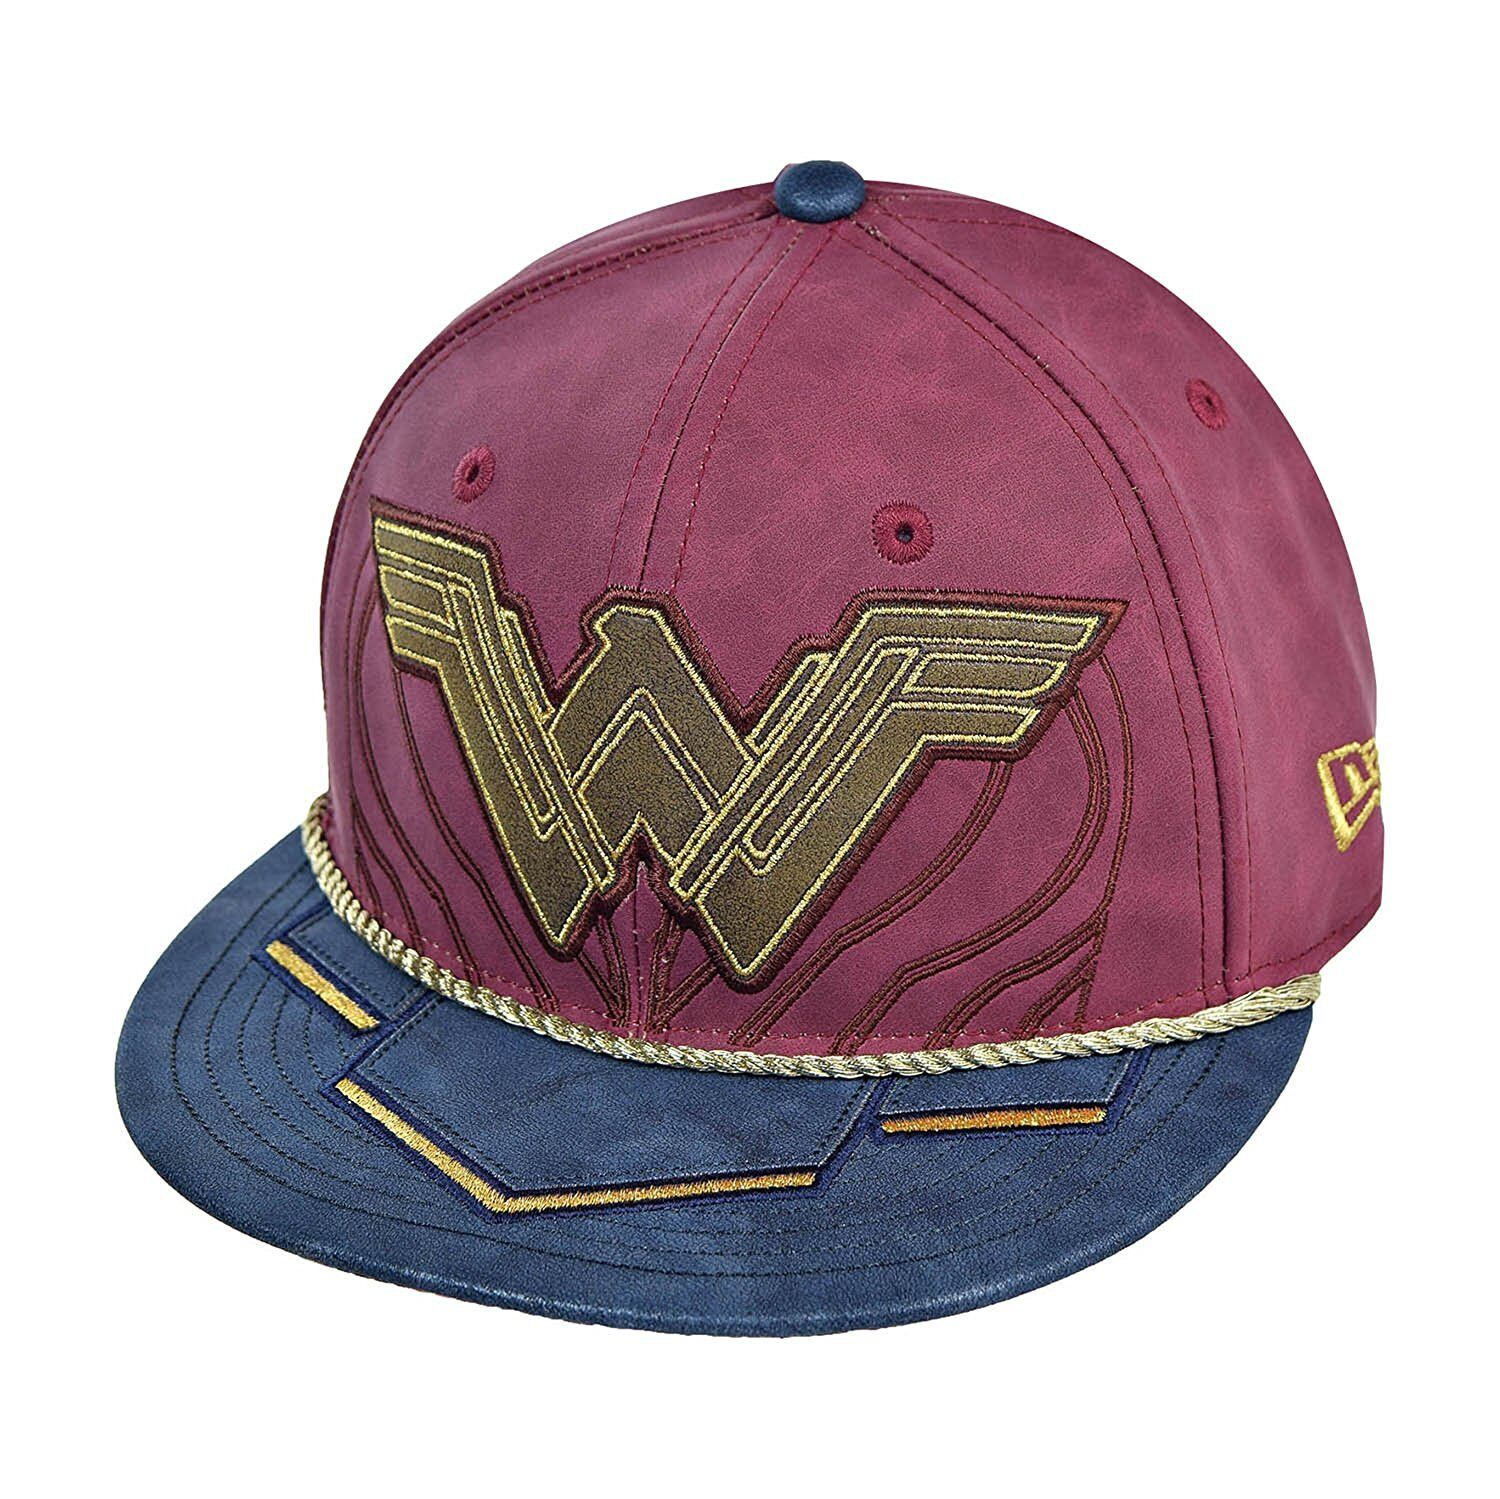 DC Comics Wonder Woman Battel Armor Symbol 5950 Fitted Baseball Cap